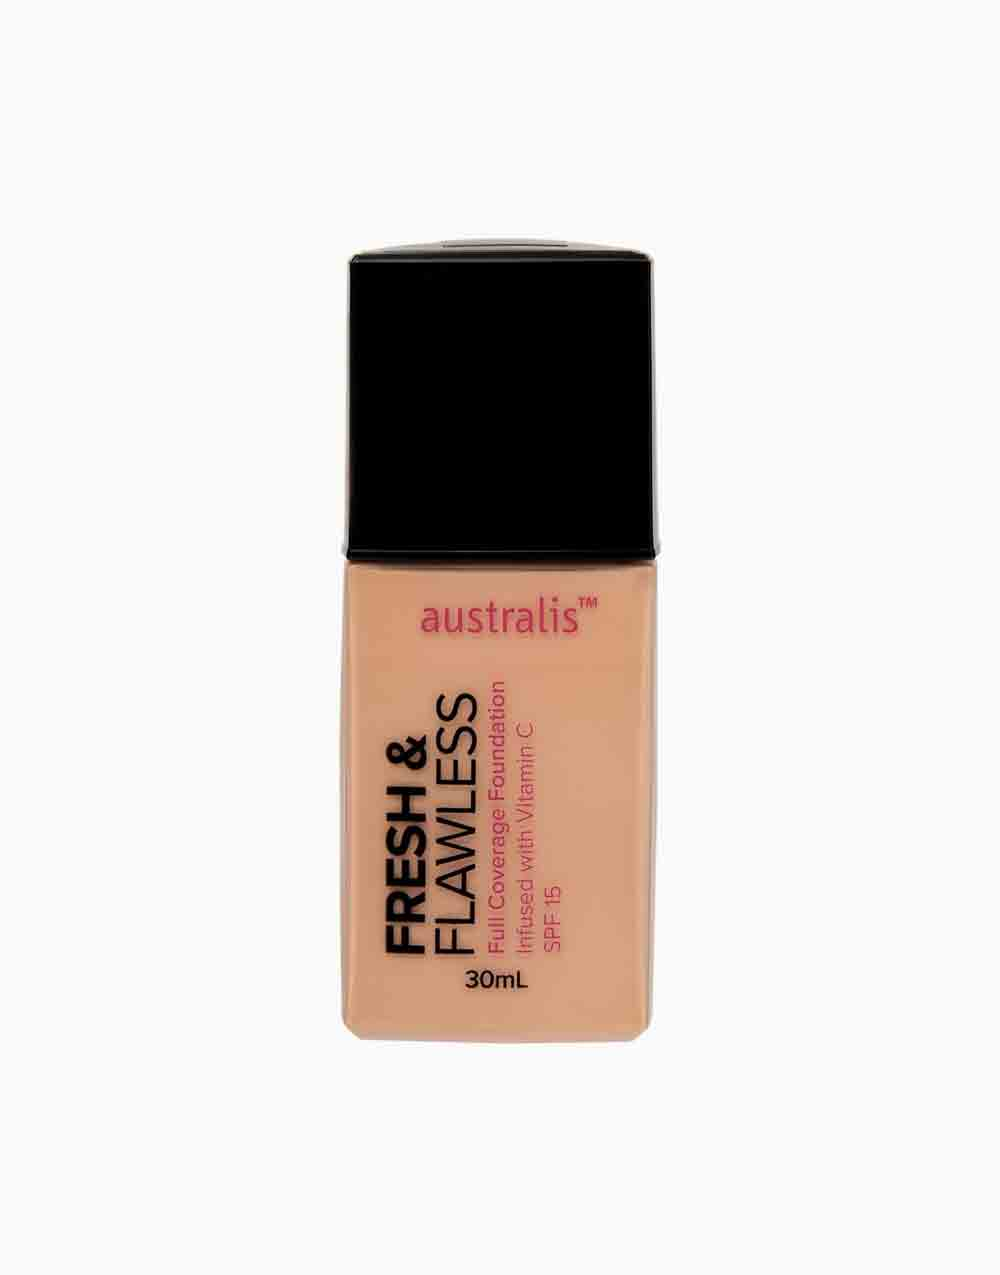 Fresh & Flawless Full Coverage Foundation by Australis   Light Beige